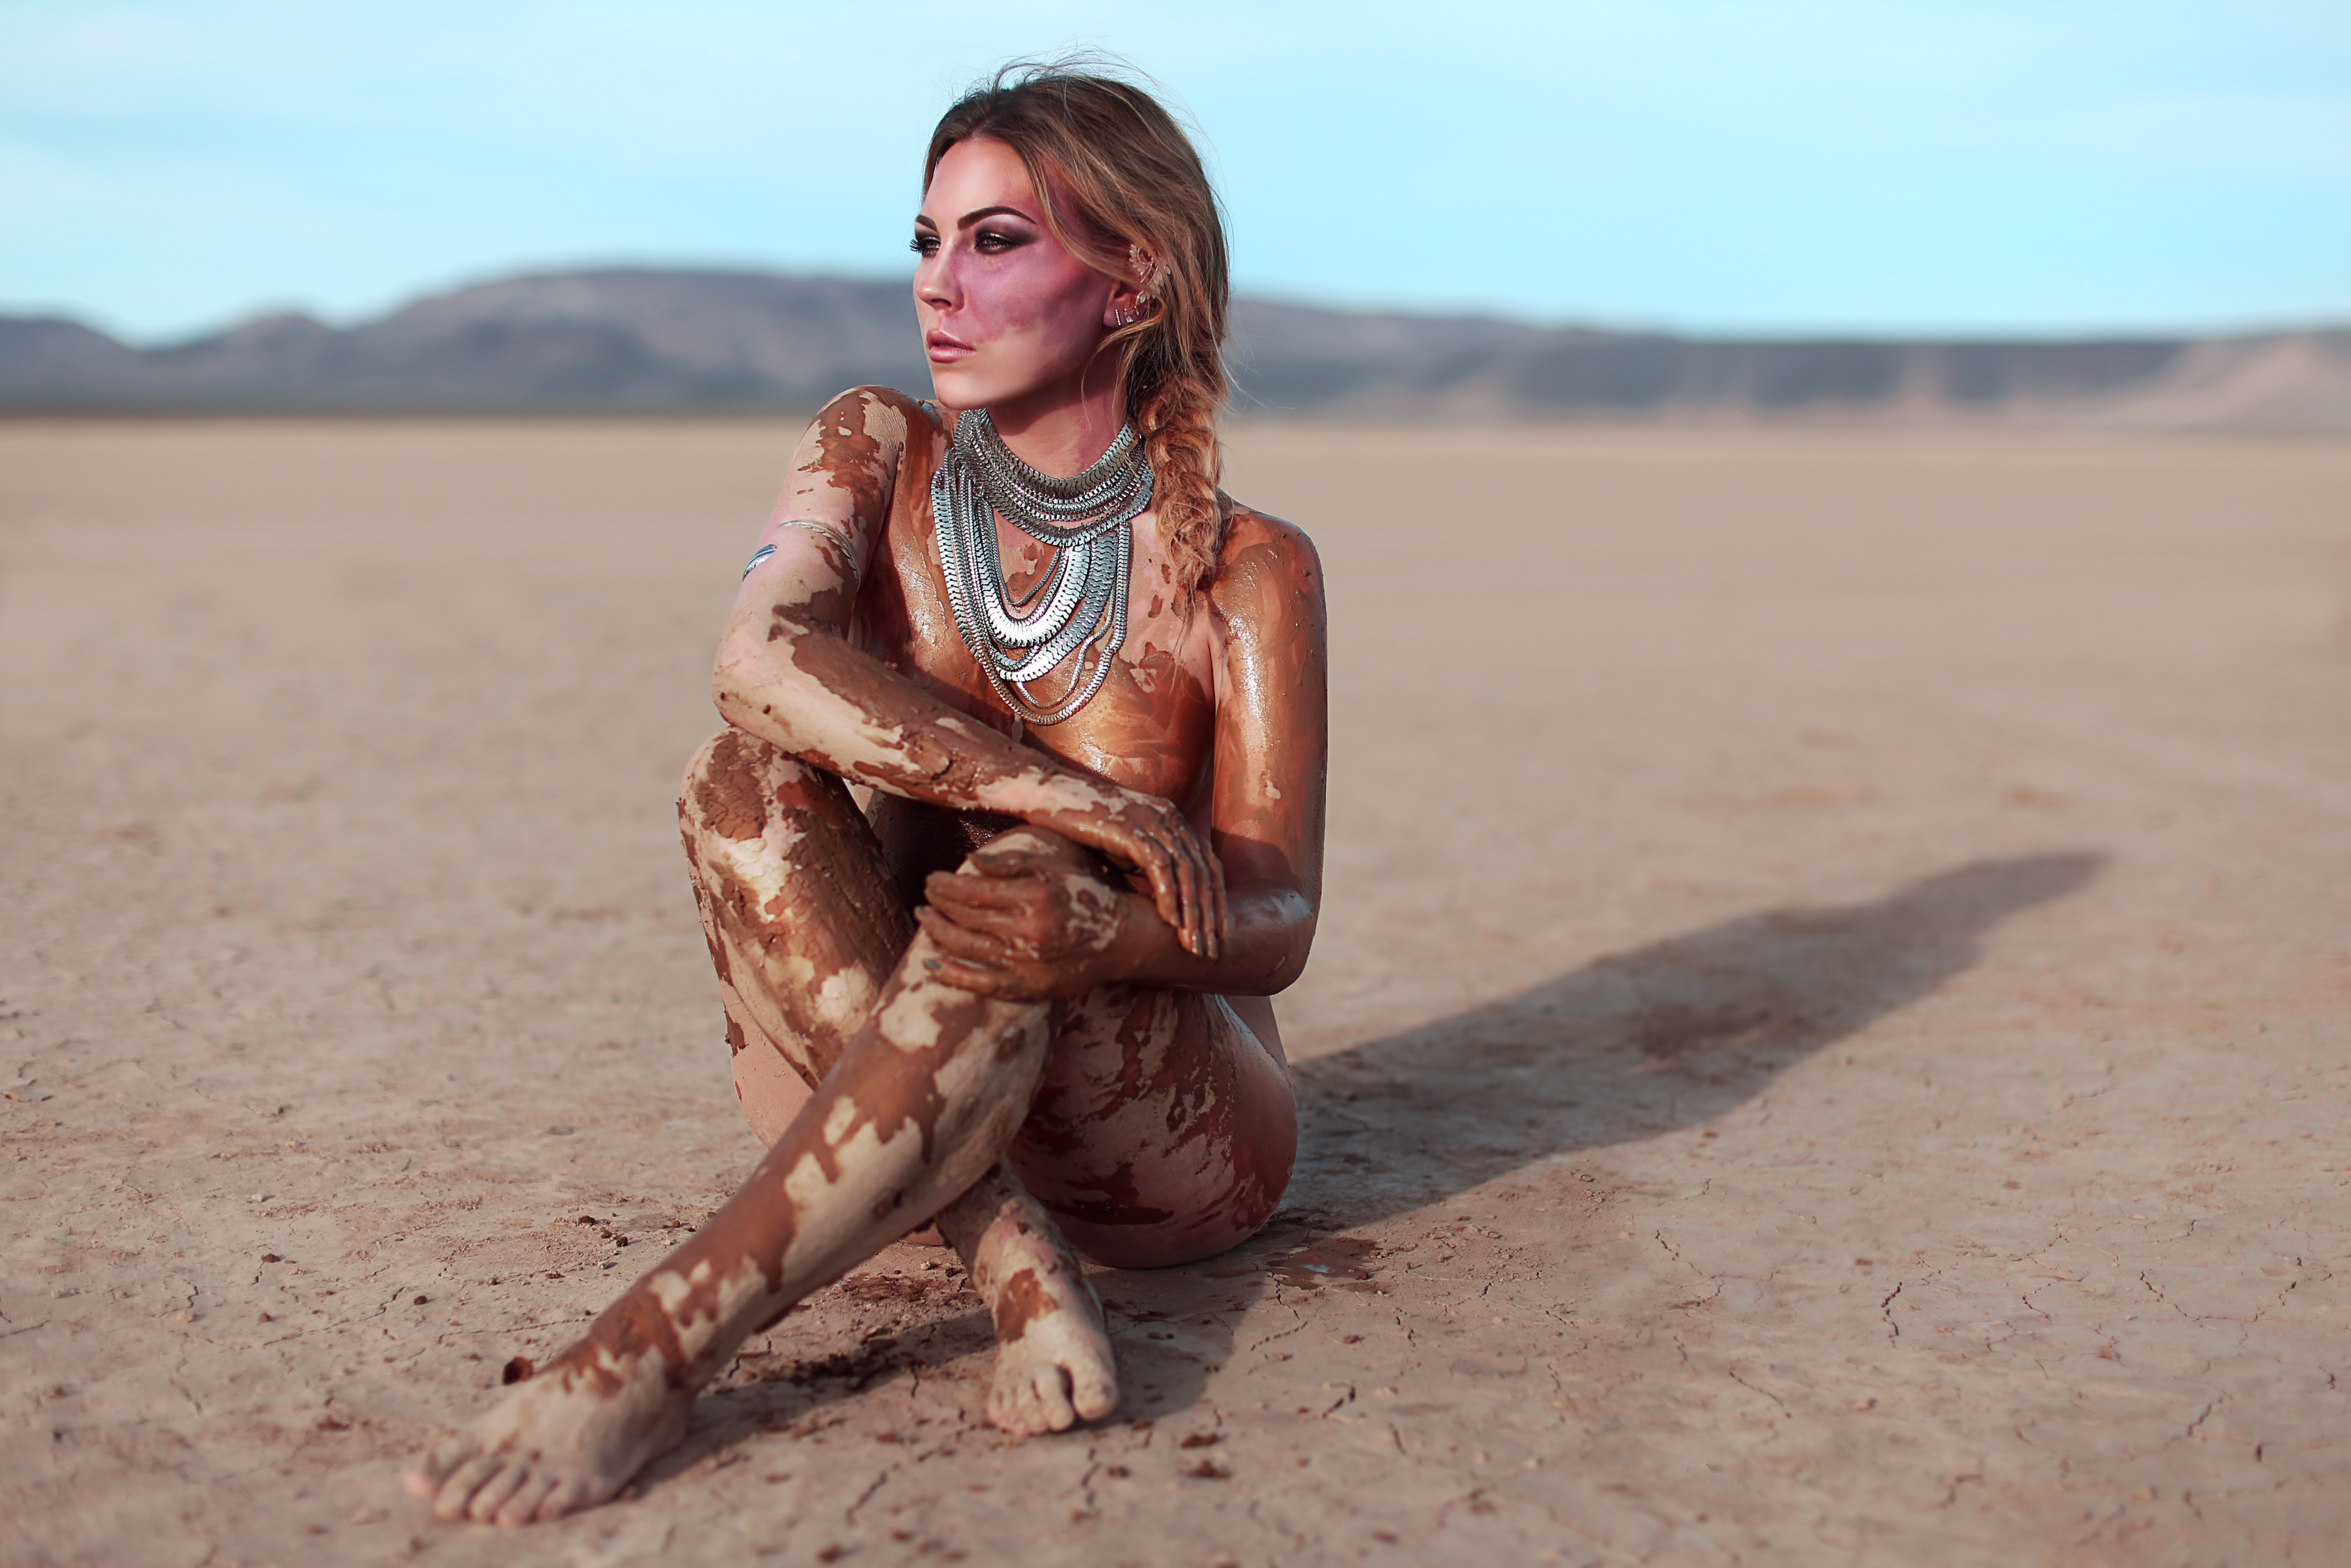 Paige sitting on some sad, covered in mud, looking away from the camera s her birthmark stands out on her face and neck.